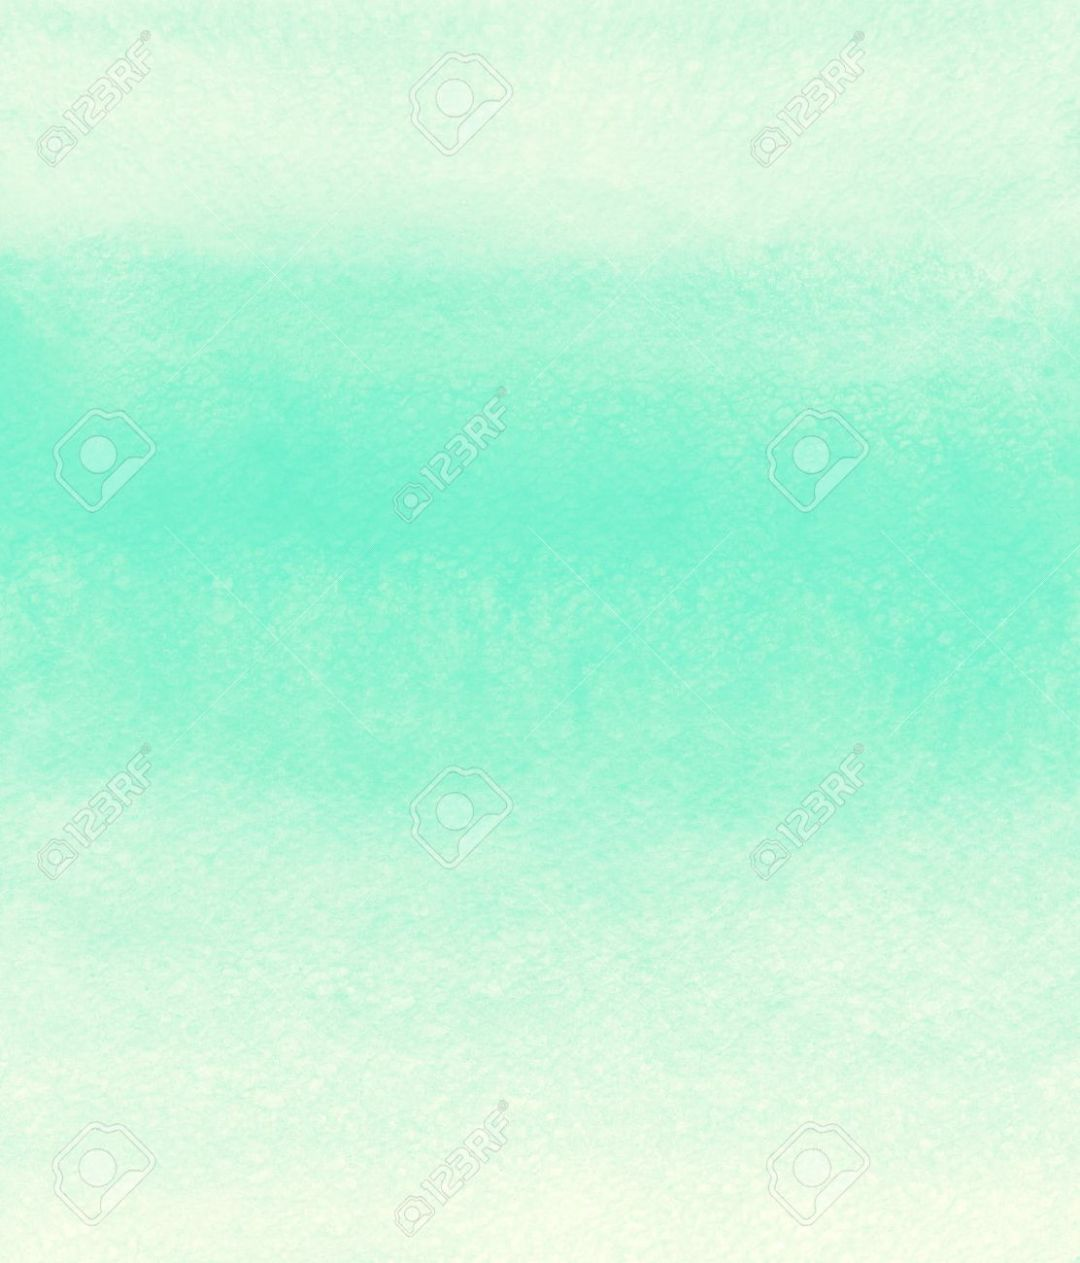 Mint Green Aesthetic HD Wallpapers (Desktop Background / Android / iPhone) (1080p, 4k) (35124) - 3D / Abstract